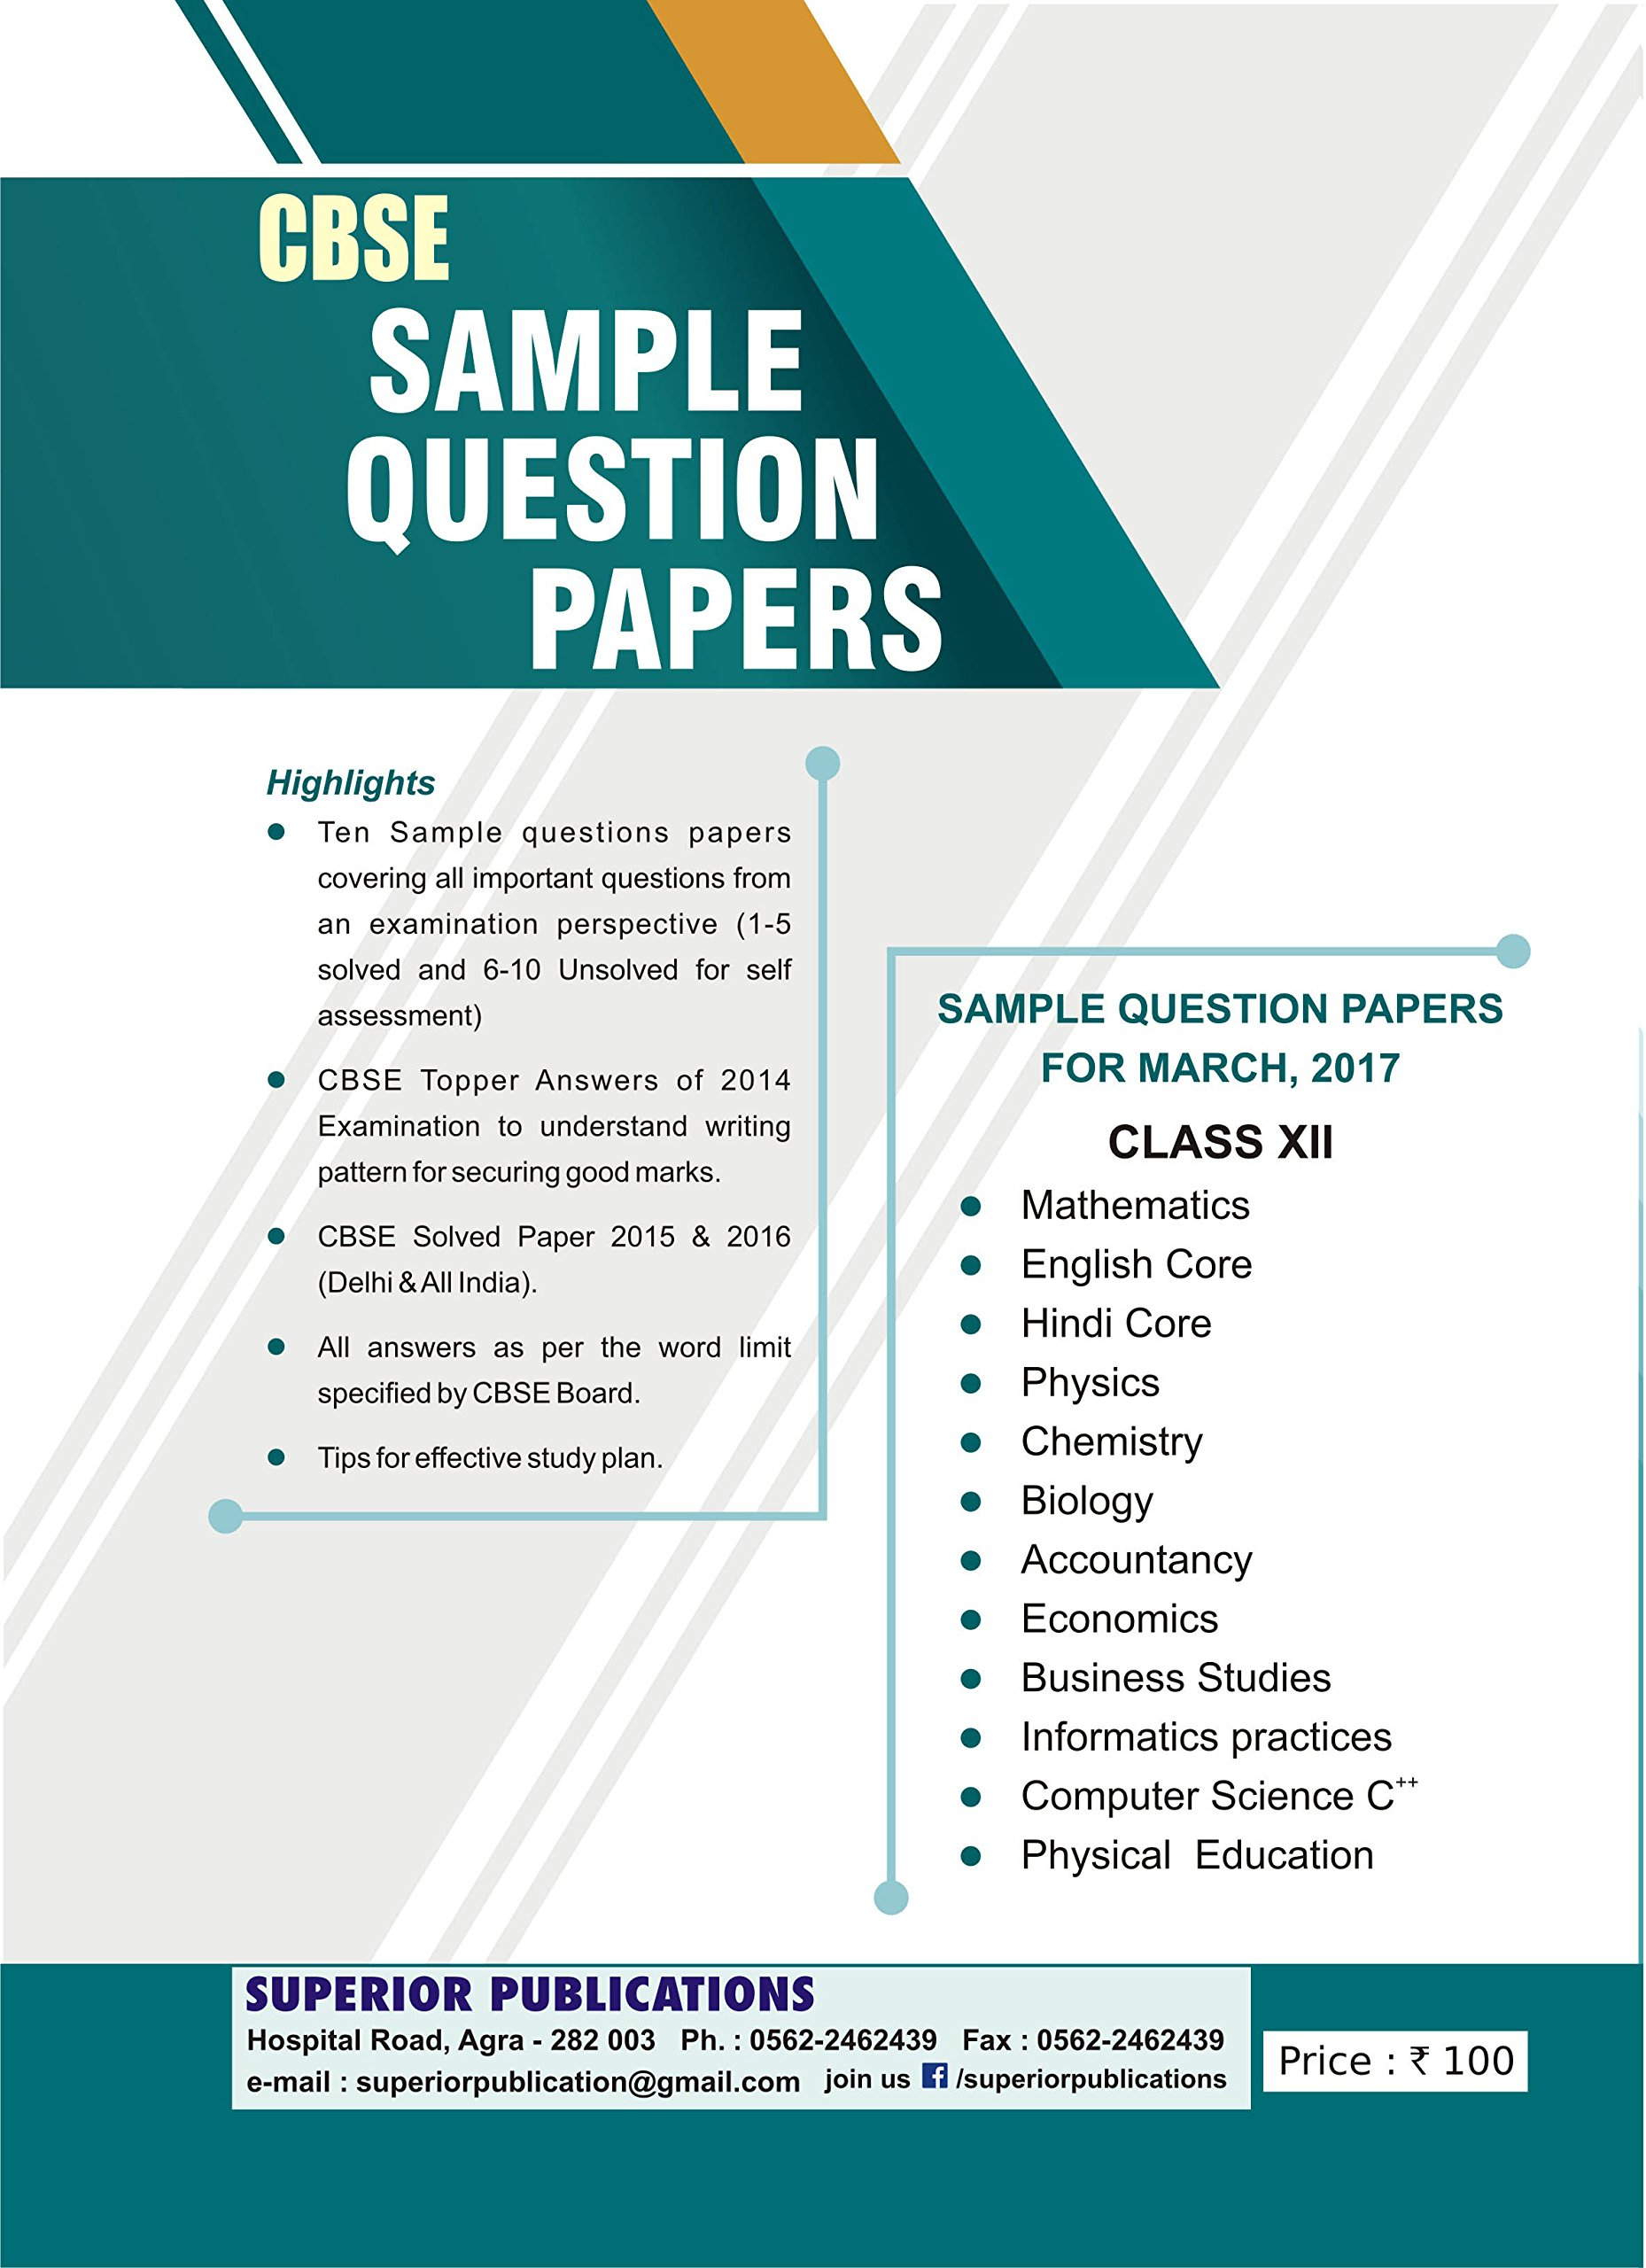 Amazon buy cbse sample question paper business studies class 12 amazon buy cbse sample question paper business studies class 12 2017 examination book online at low prices in india cbse sample question paper malvernweather Choice Image